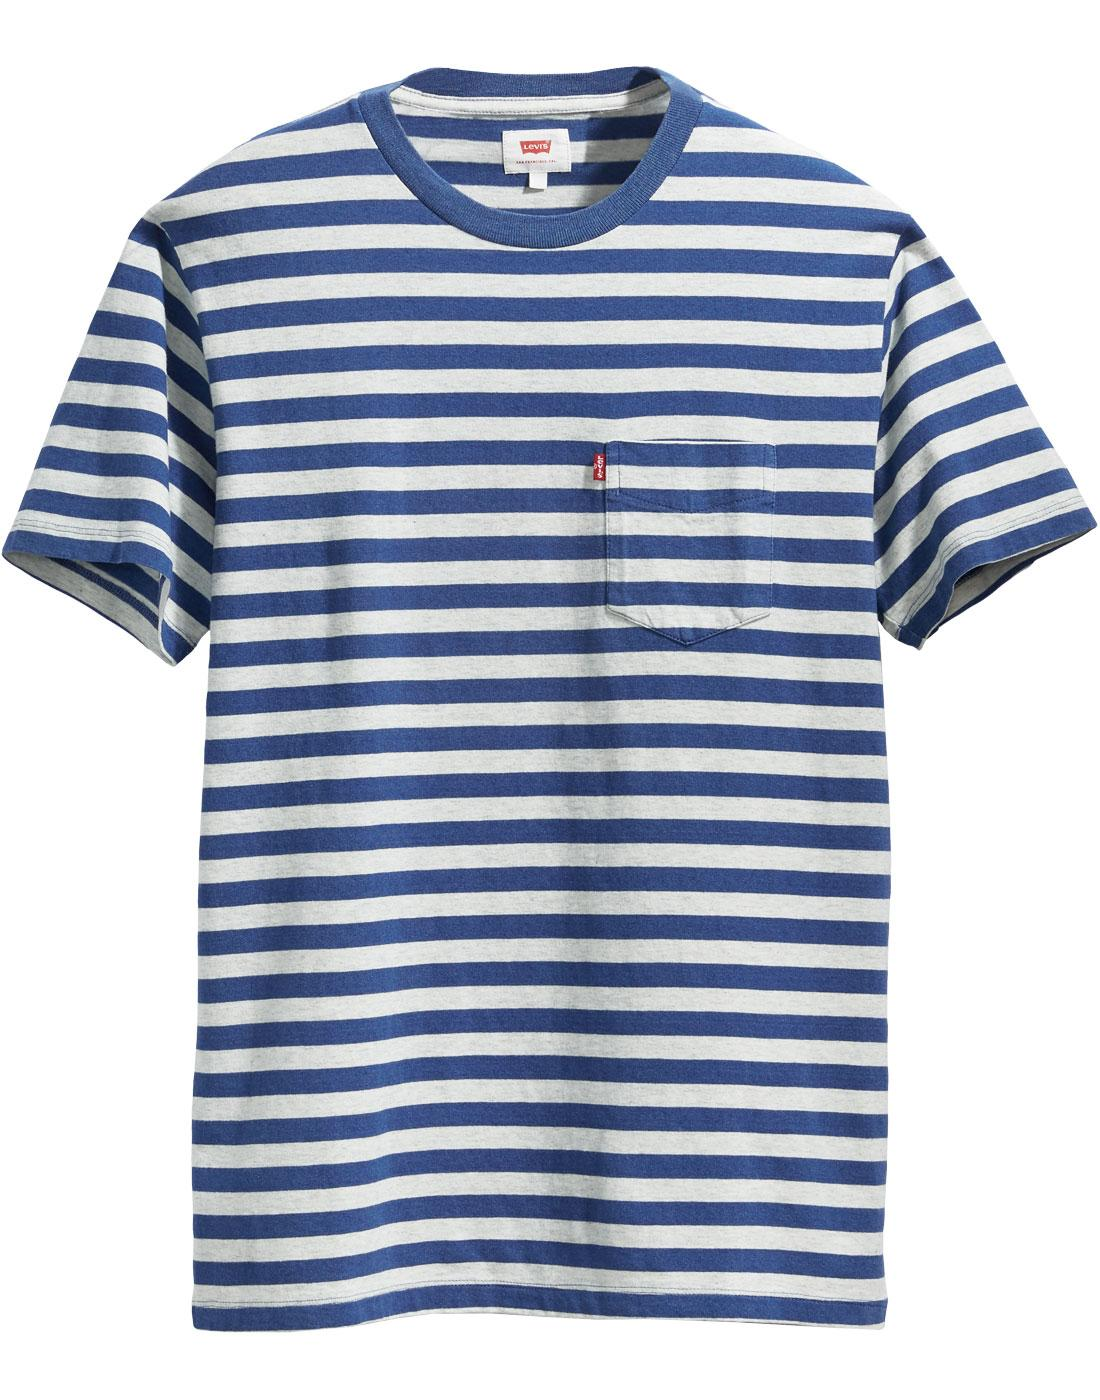 LEVI'S Retro Mod Blue Stripe Sunset Pocket T-shirt